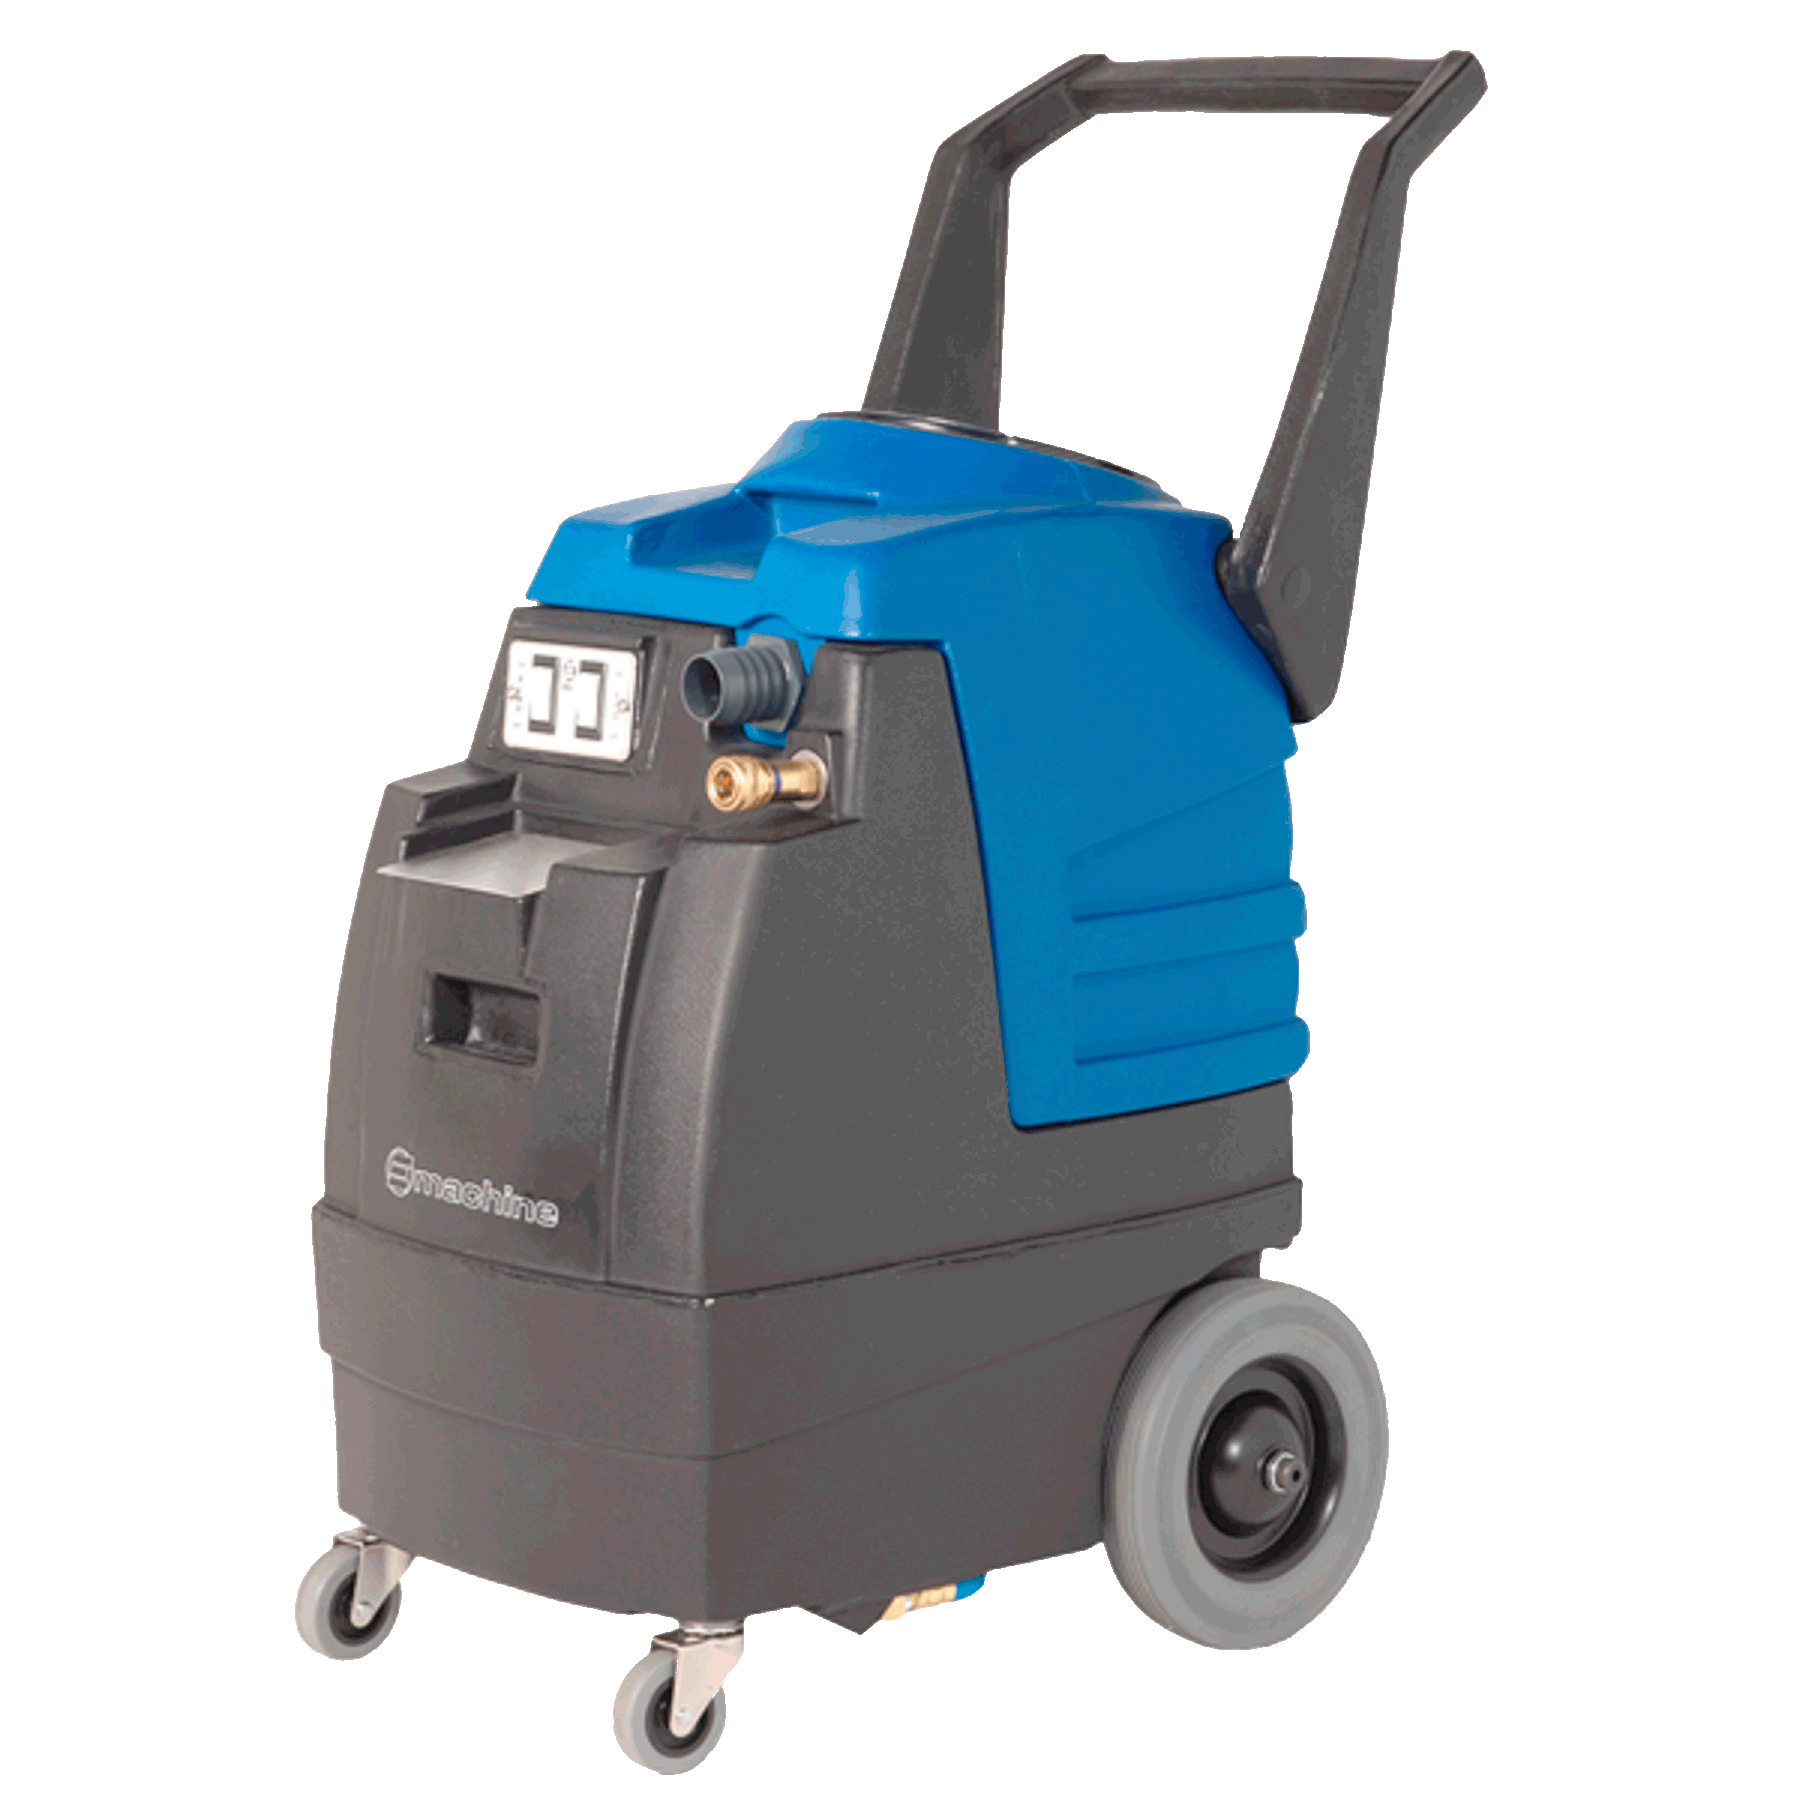 Carpet cleaner 120V